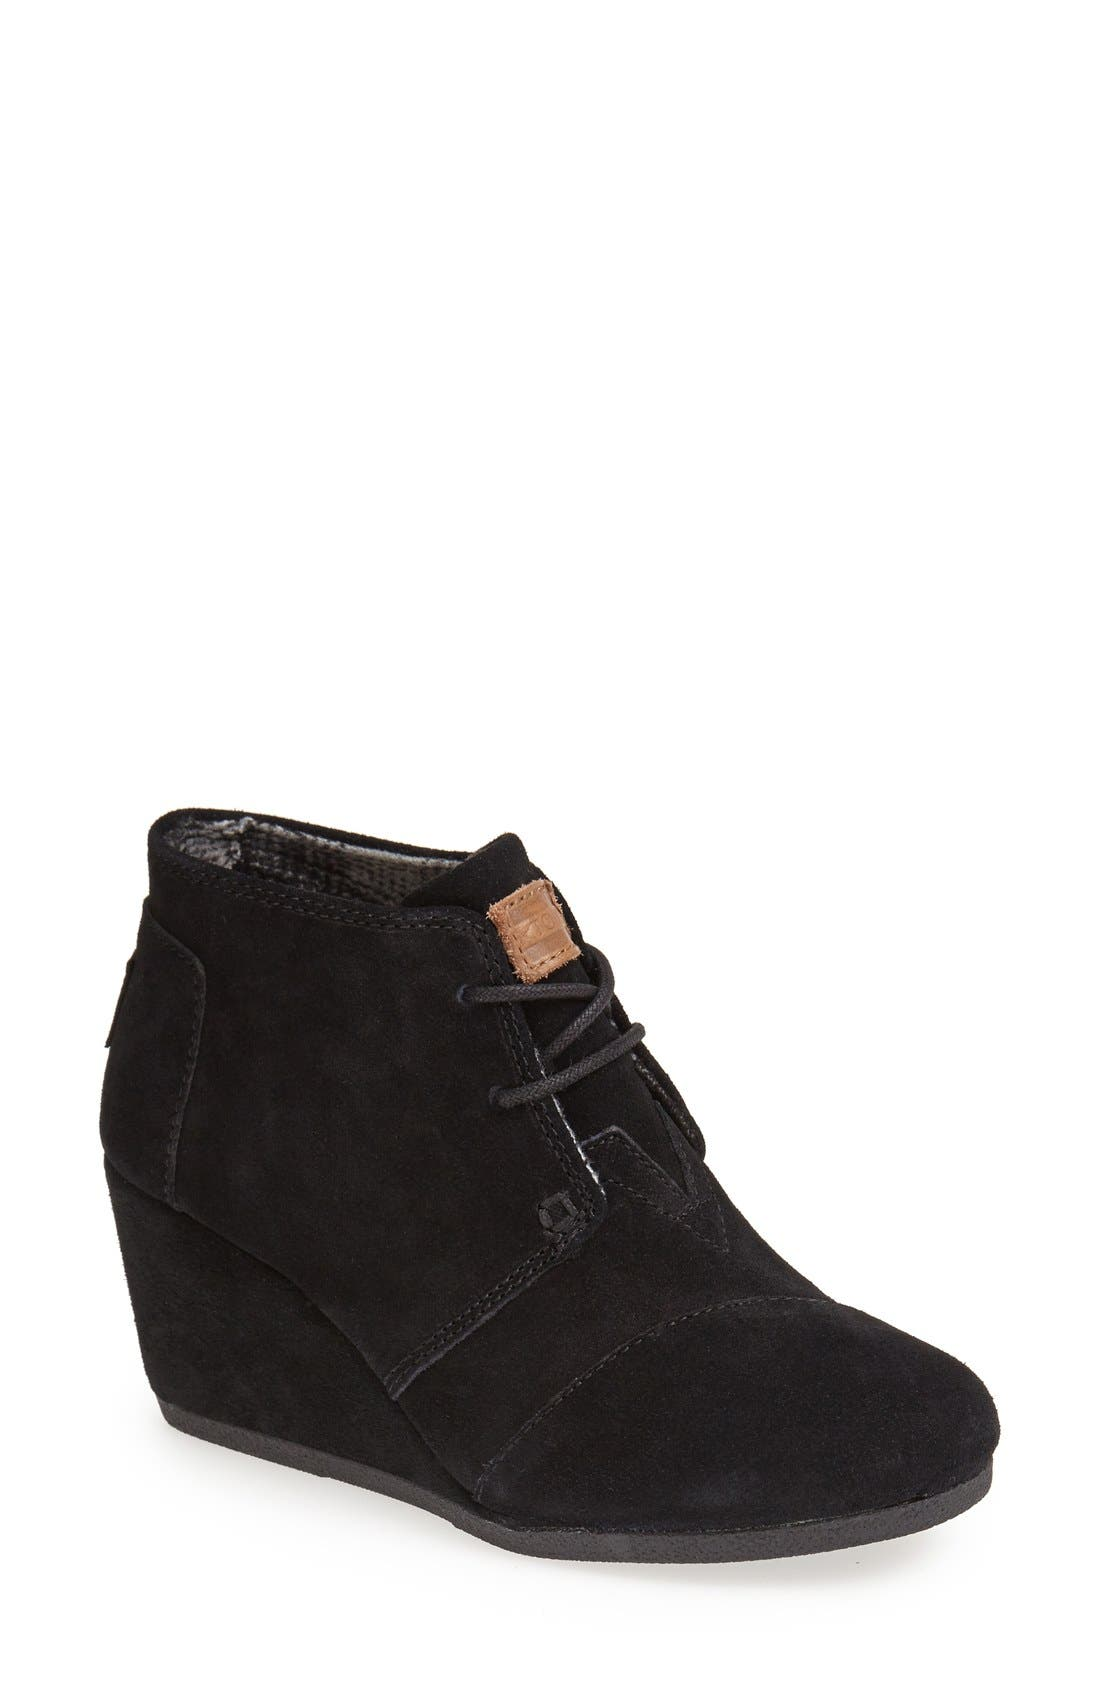 'Desert' Wedge Bootie, Main, color, 001